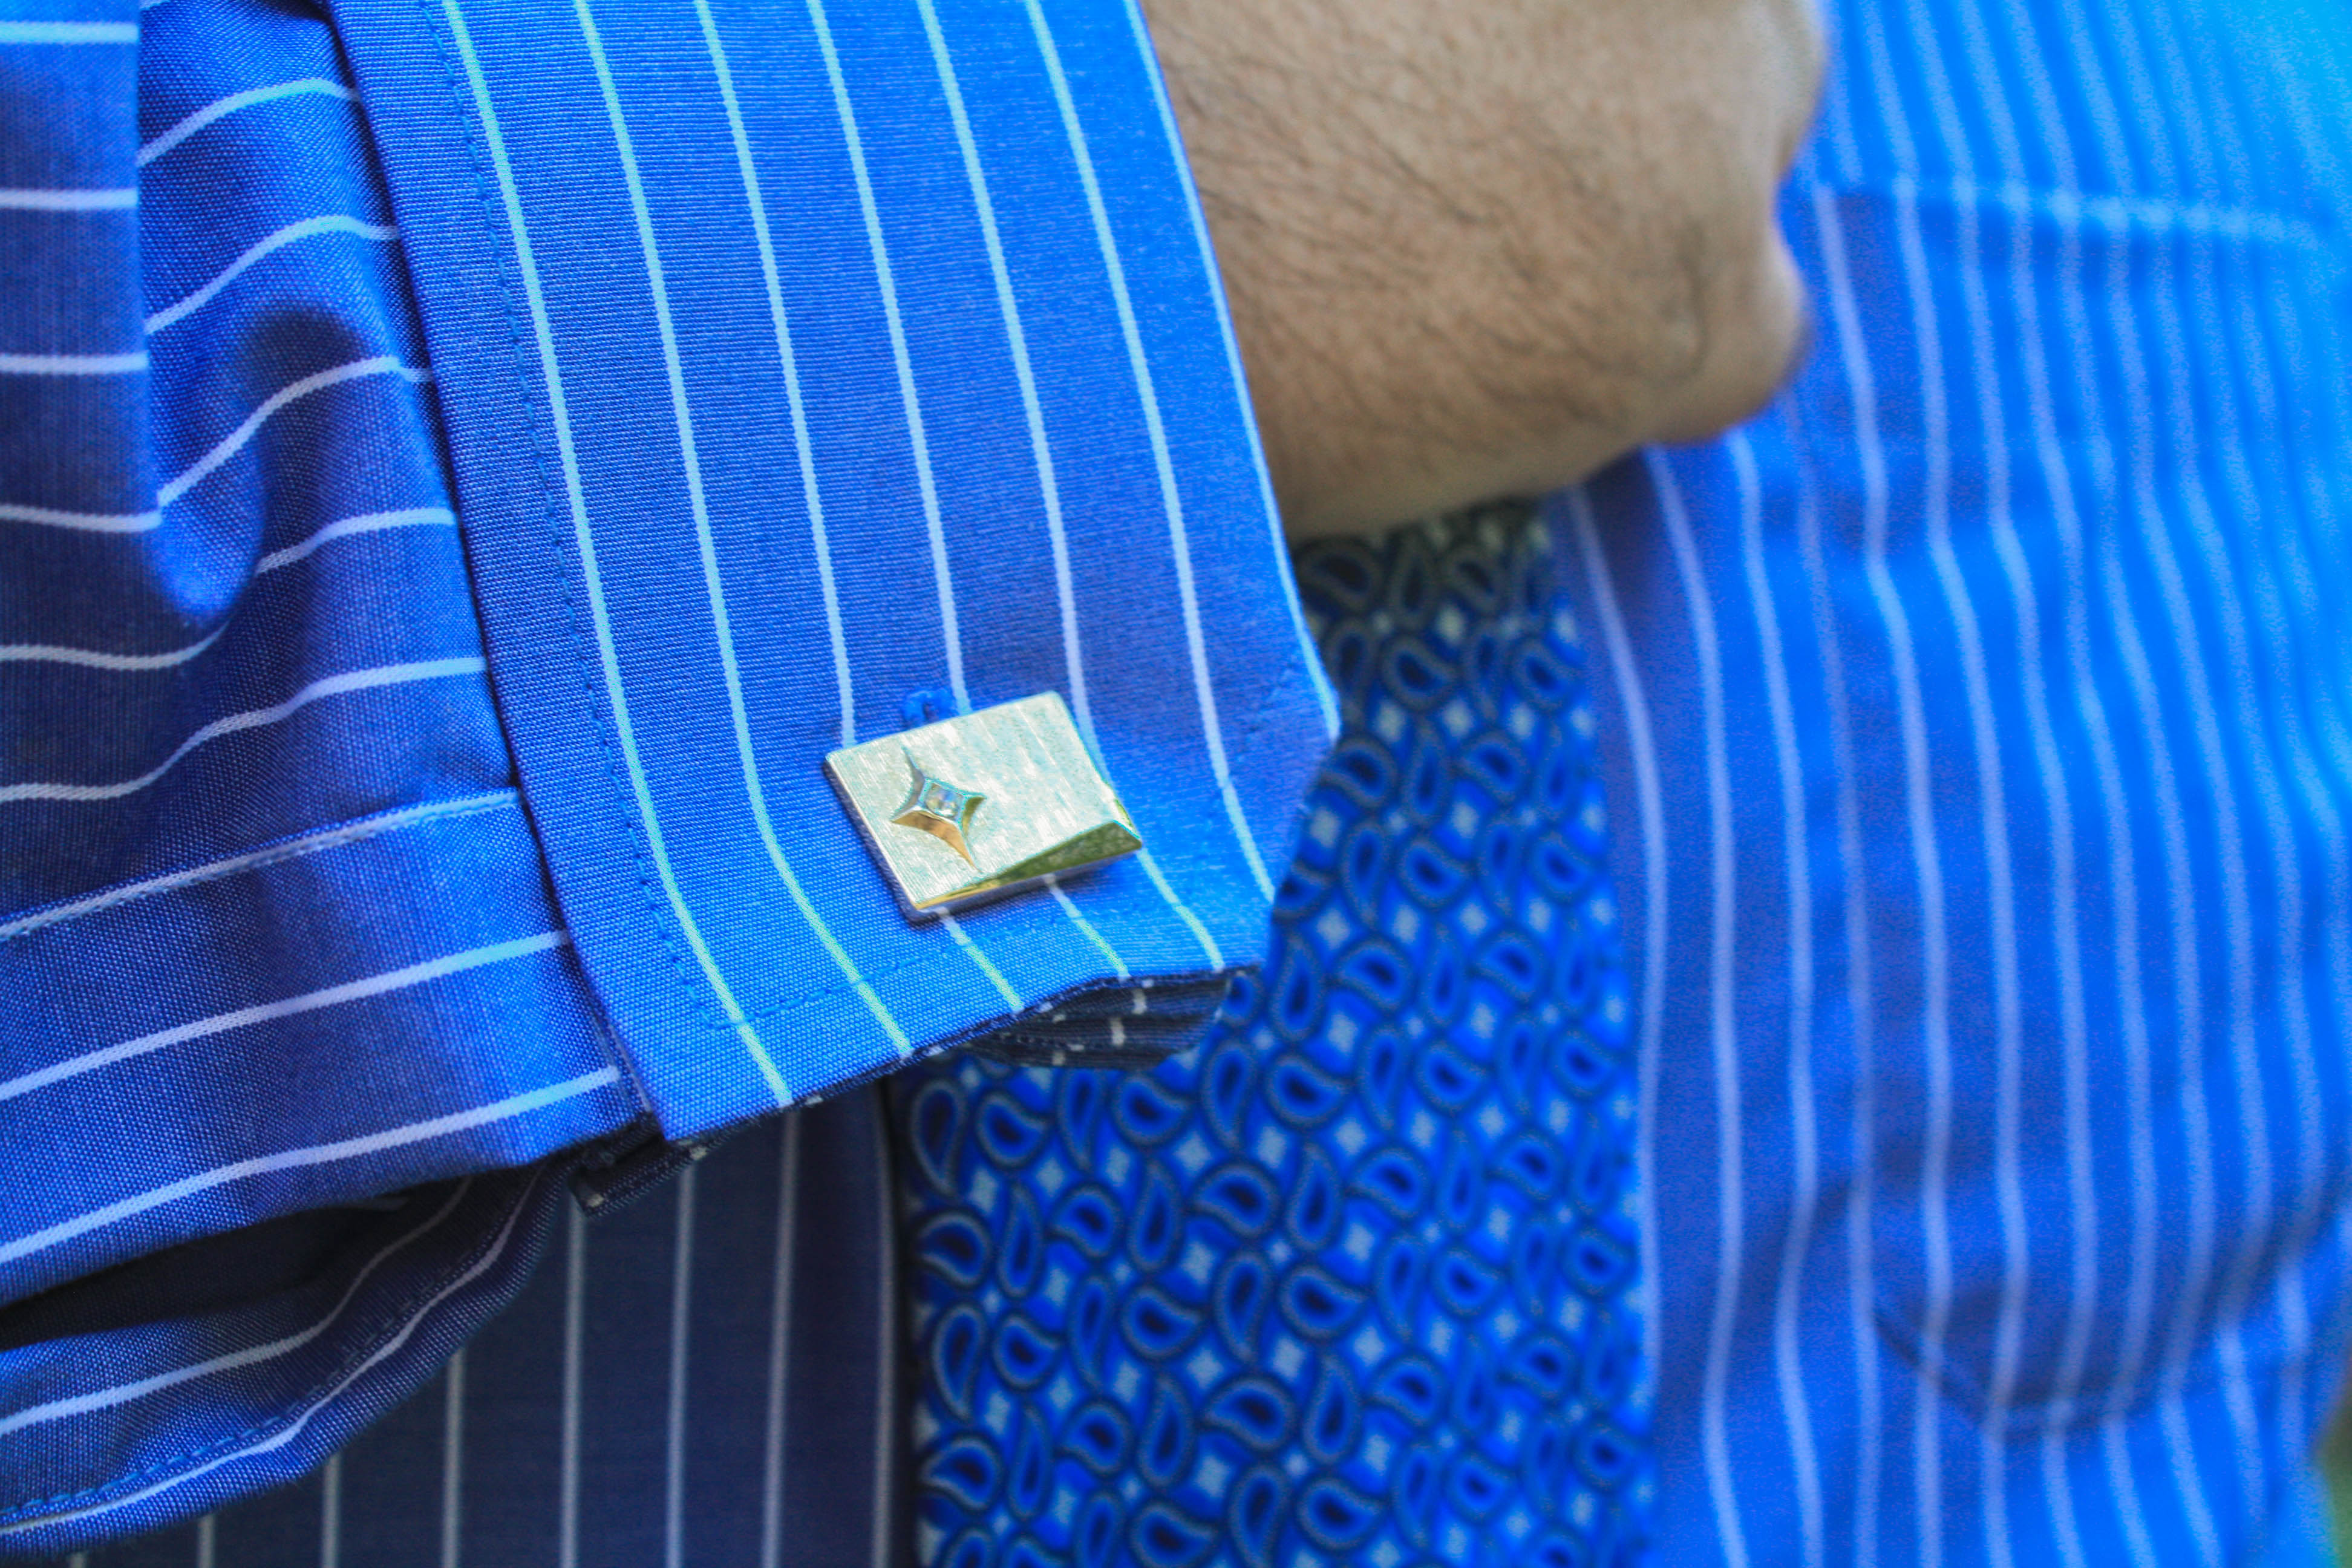 A close up photo of Nick's pinstriped shirt cuffs, secured with cuff links with a gem in them, and his blue paisley tie.